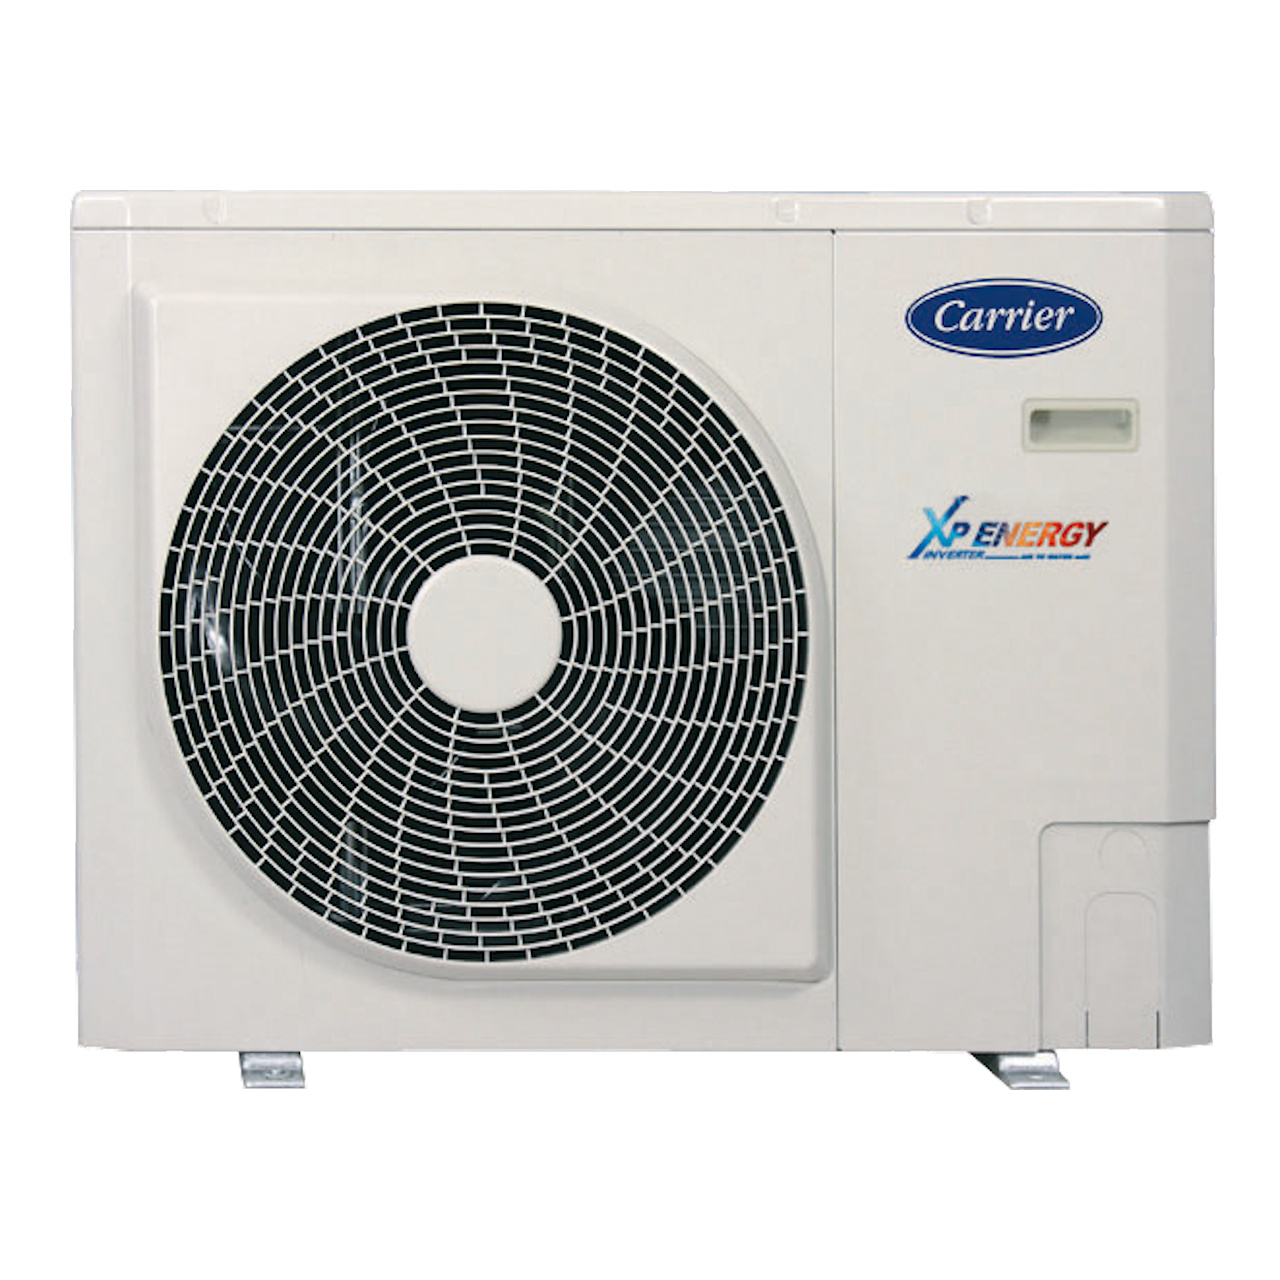 carrier-38AW-80AW-comfort-module-for-air-to-water-split-heat-pump